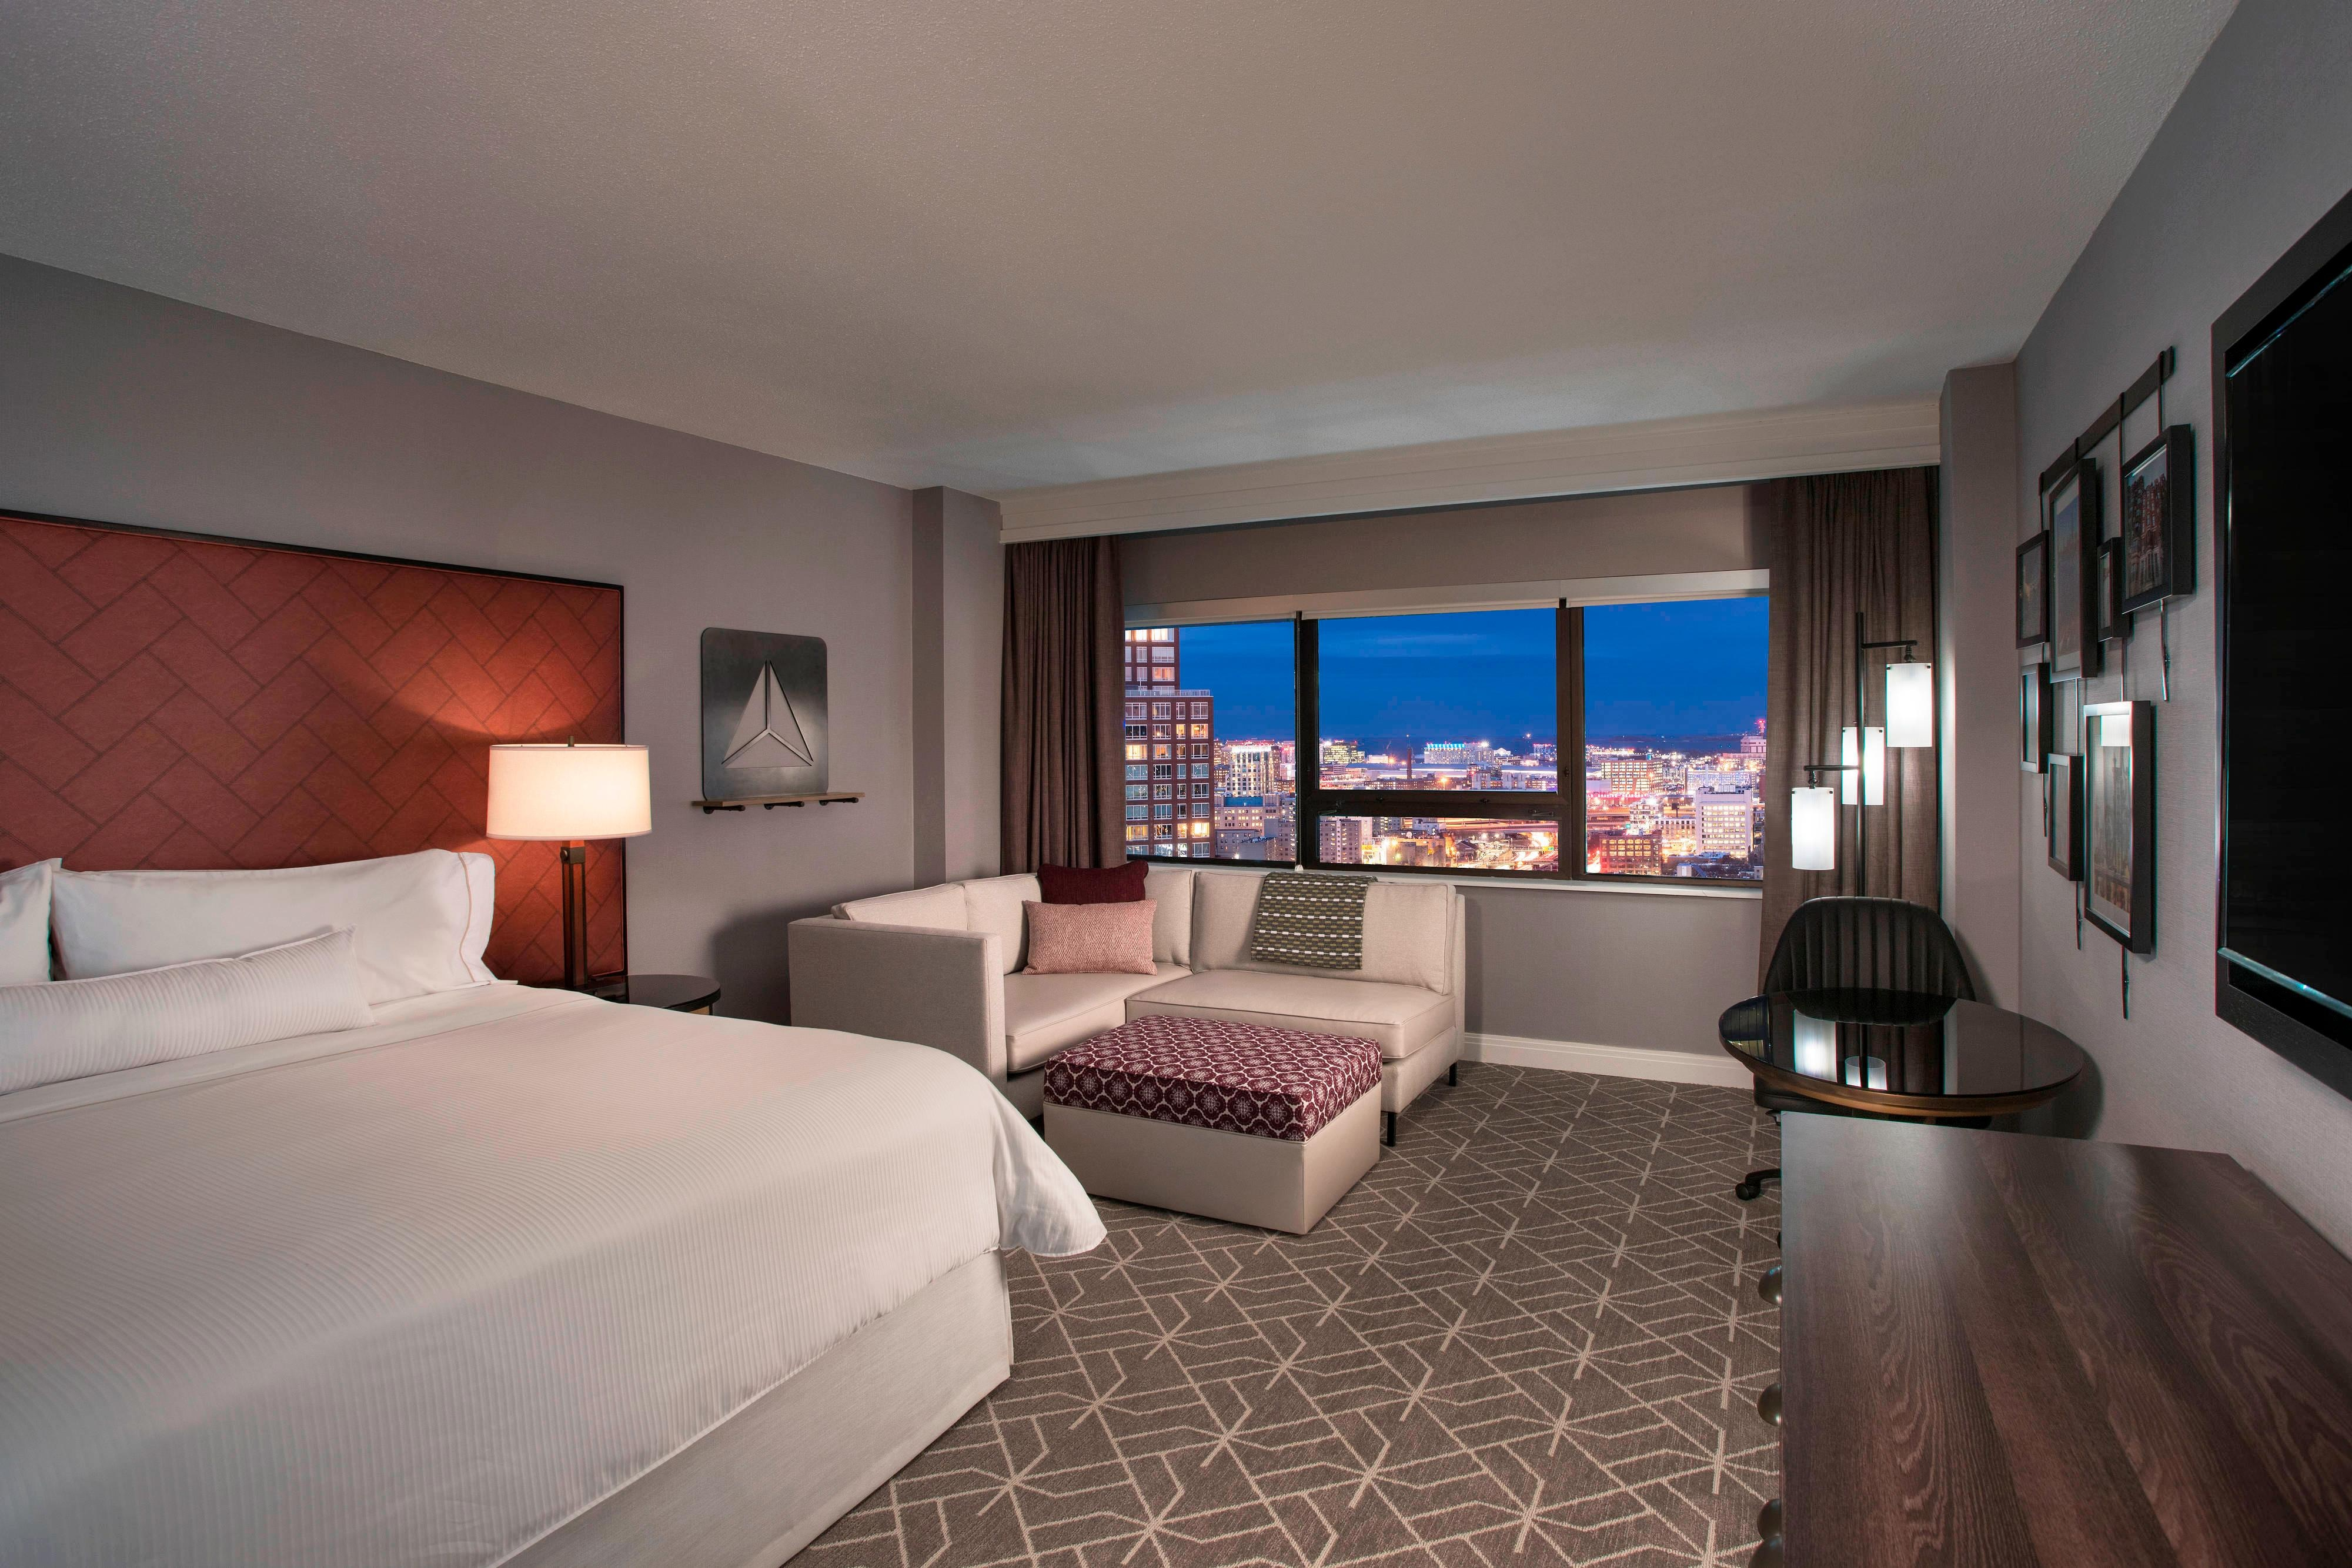 King City View Guest Room